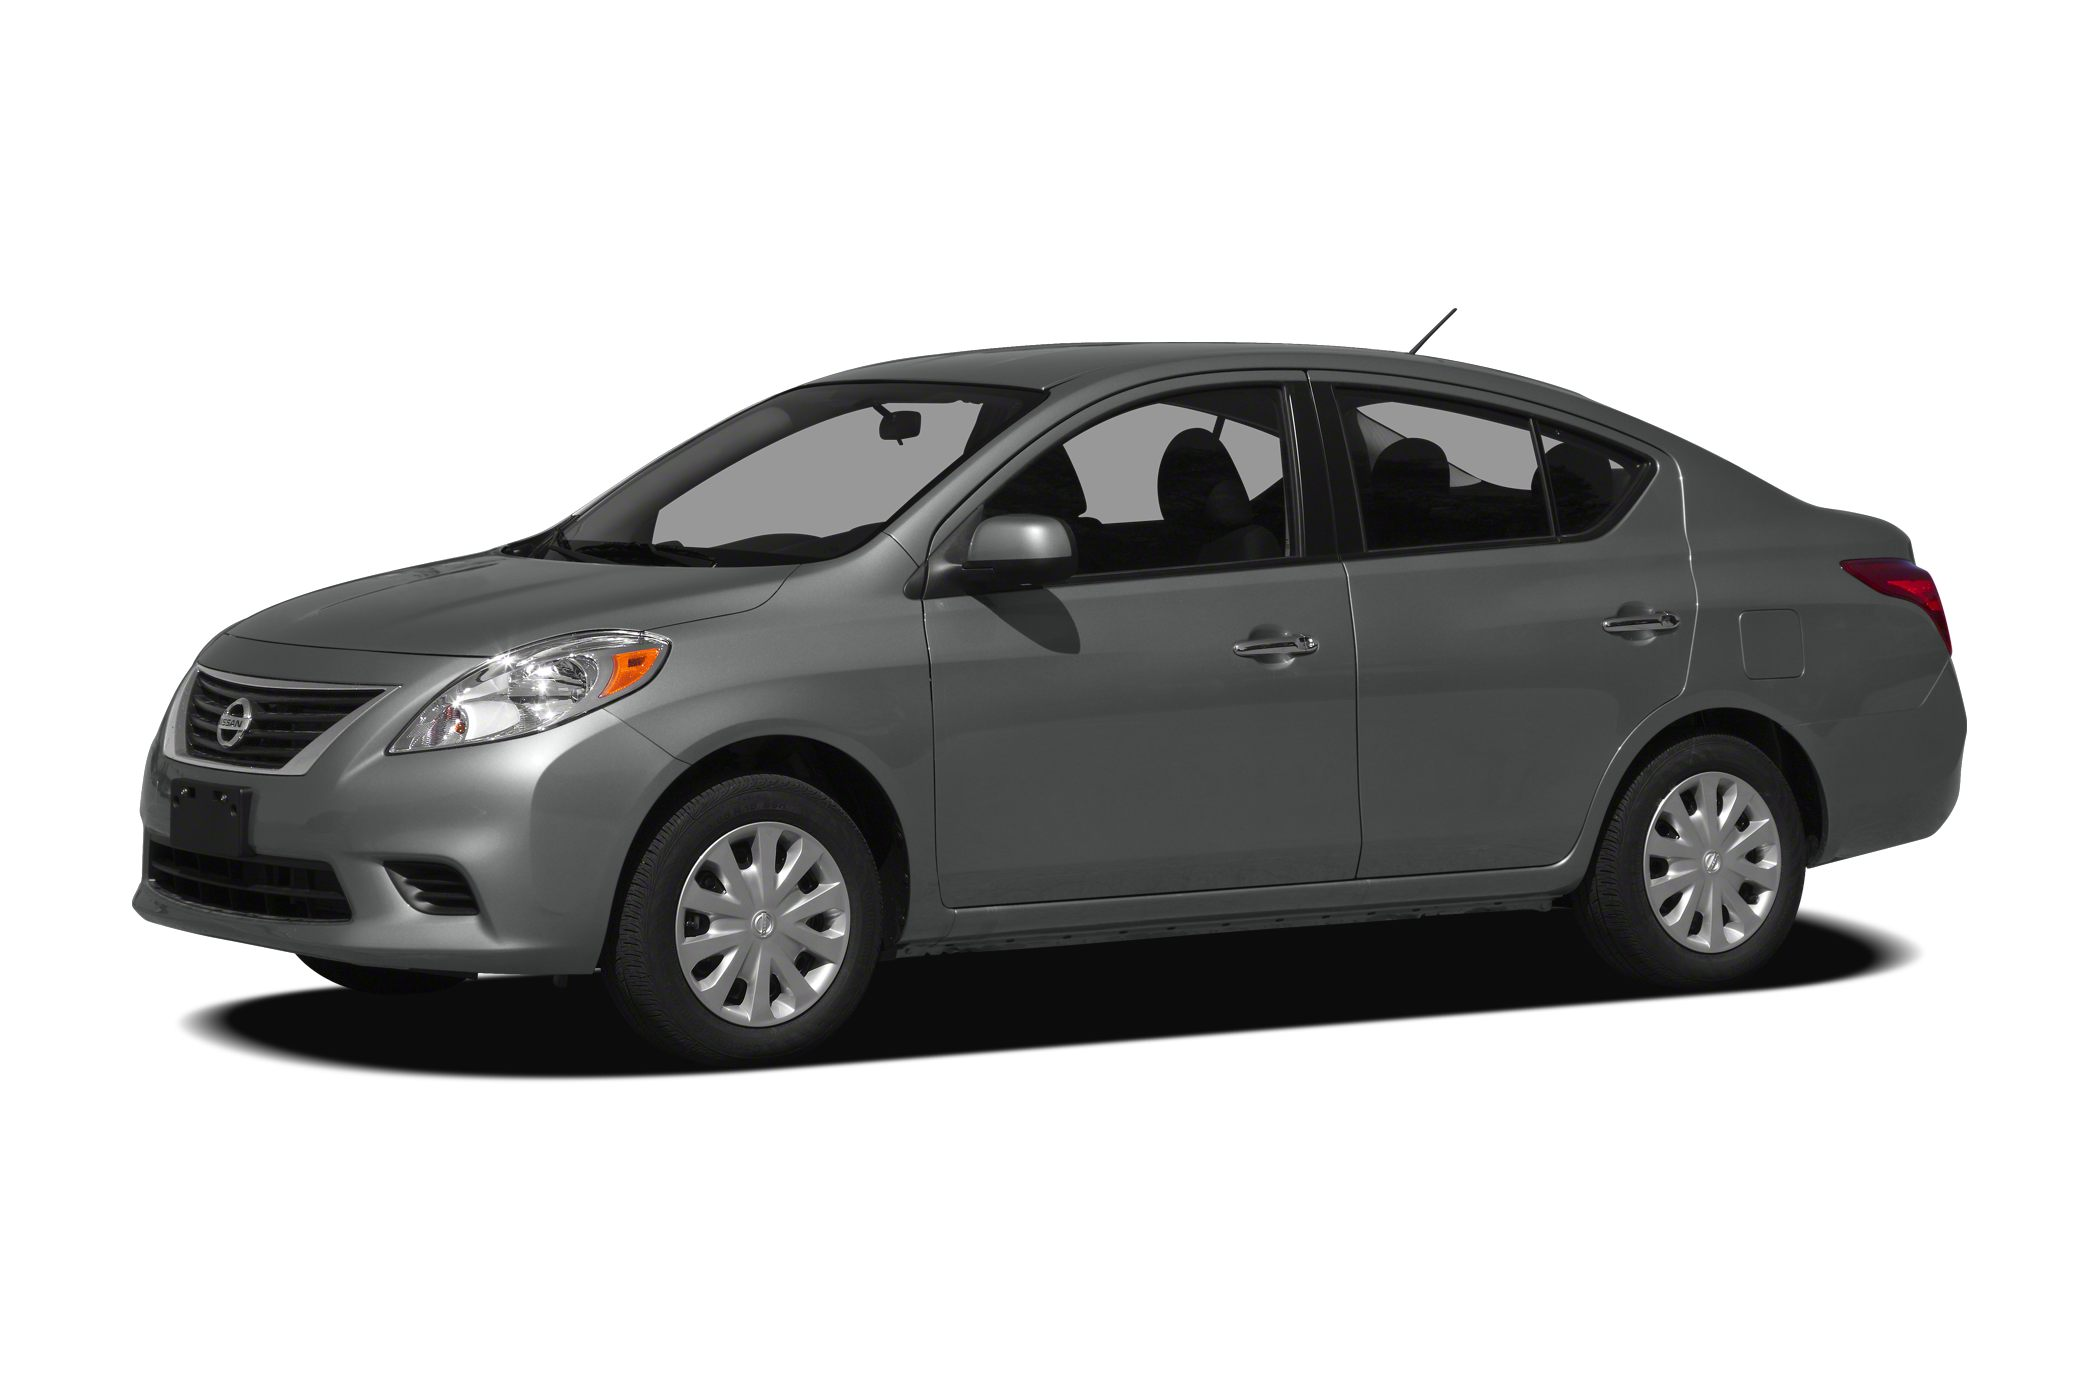 2012 Nissan Versa 1.6 S Sedan for sale in Manchester for $7,900 with 57,654 miles.